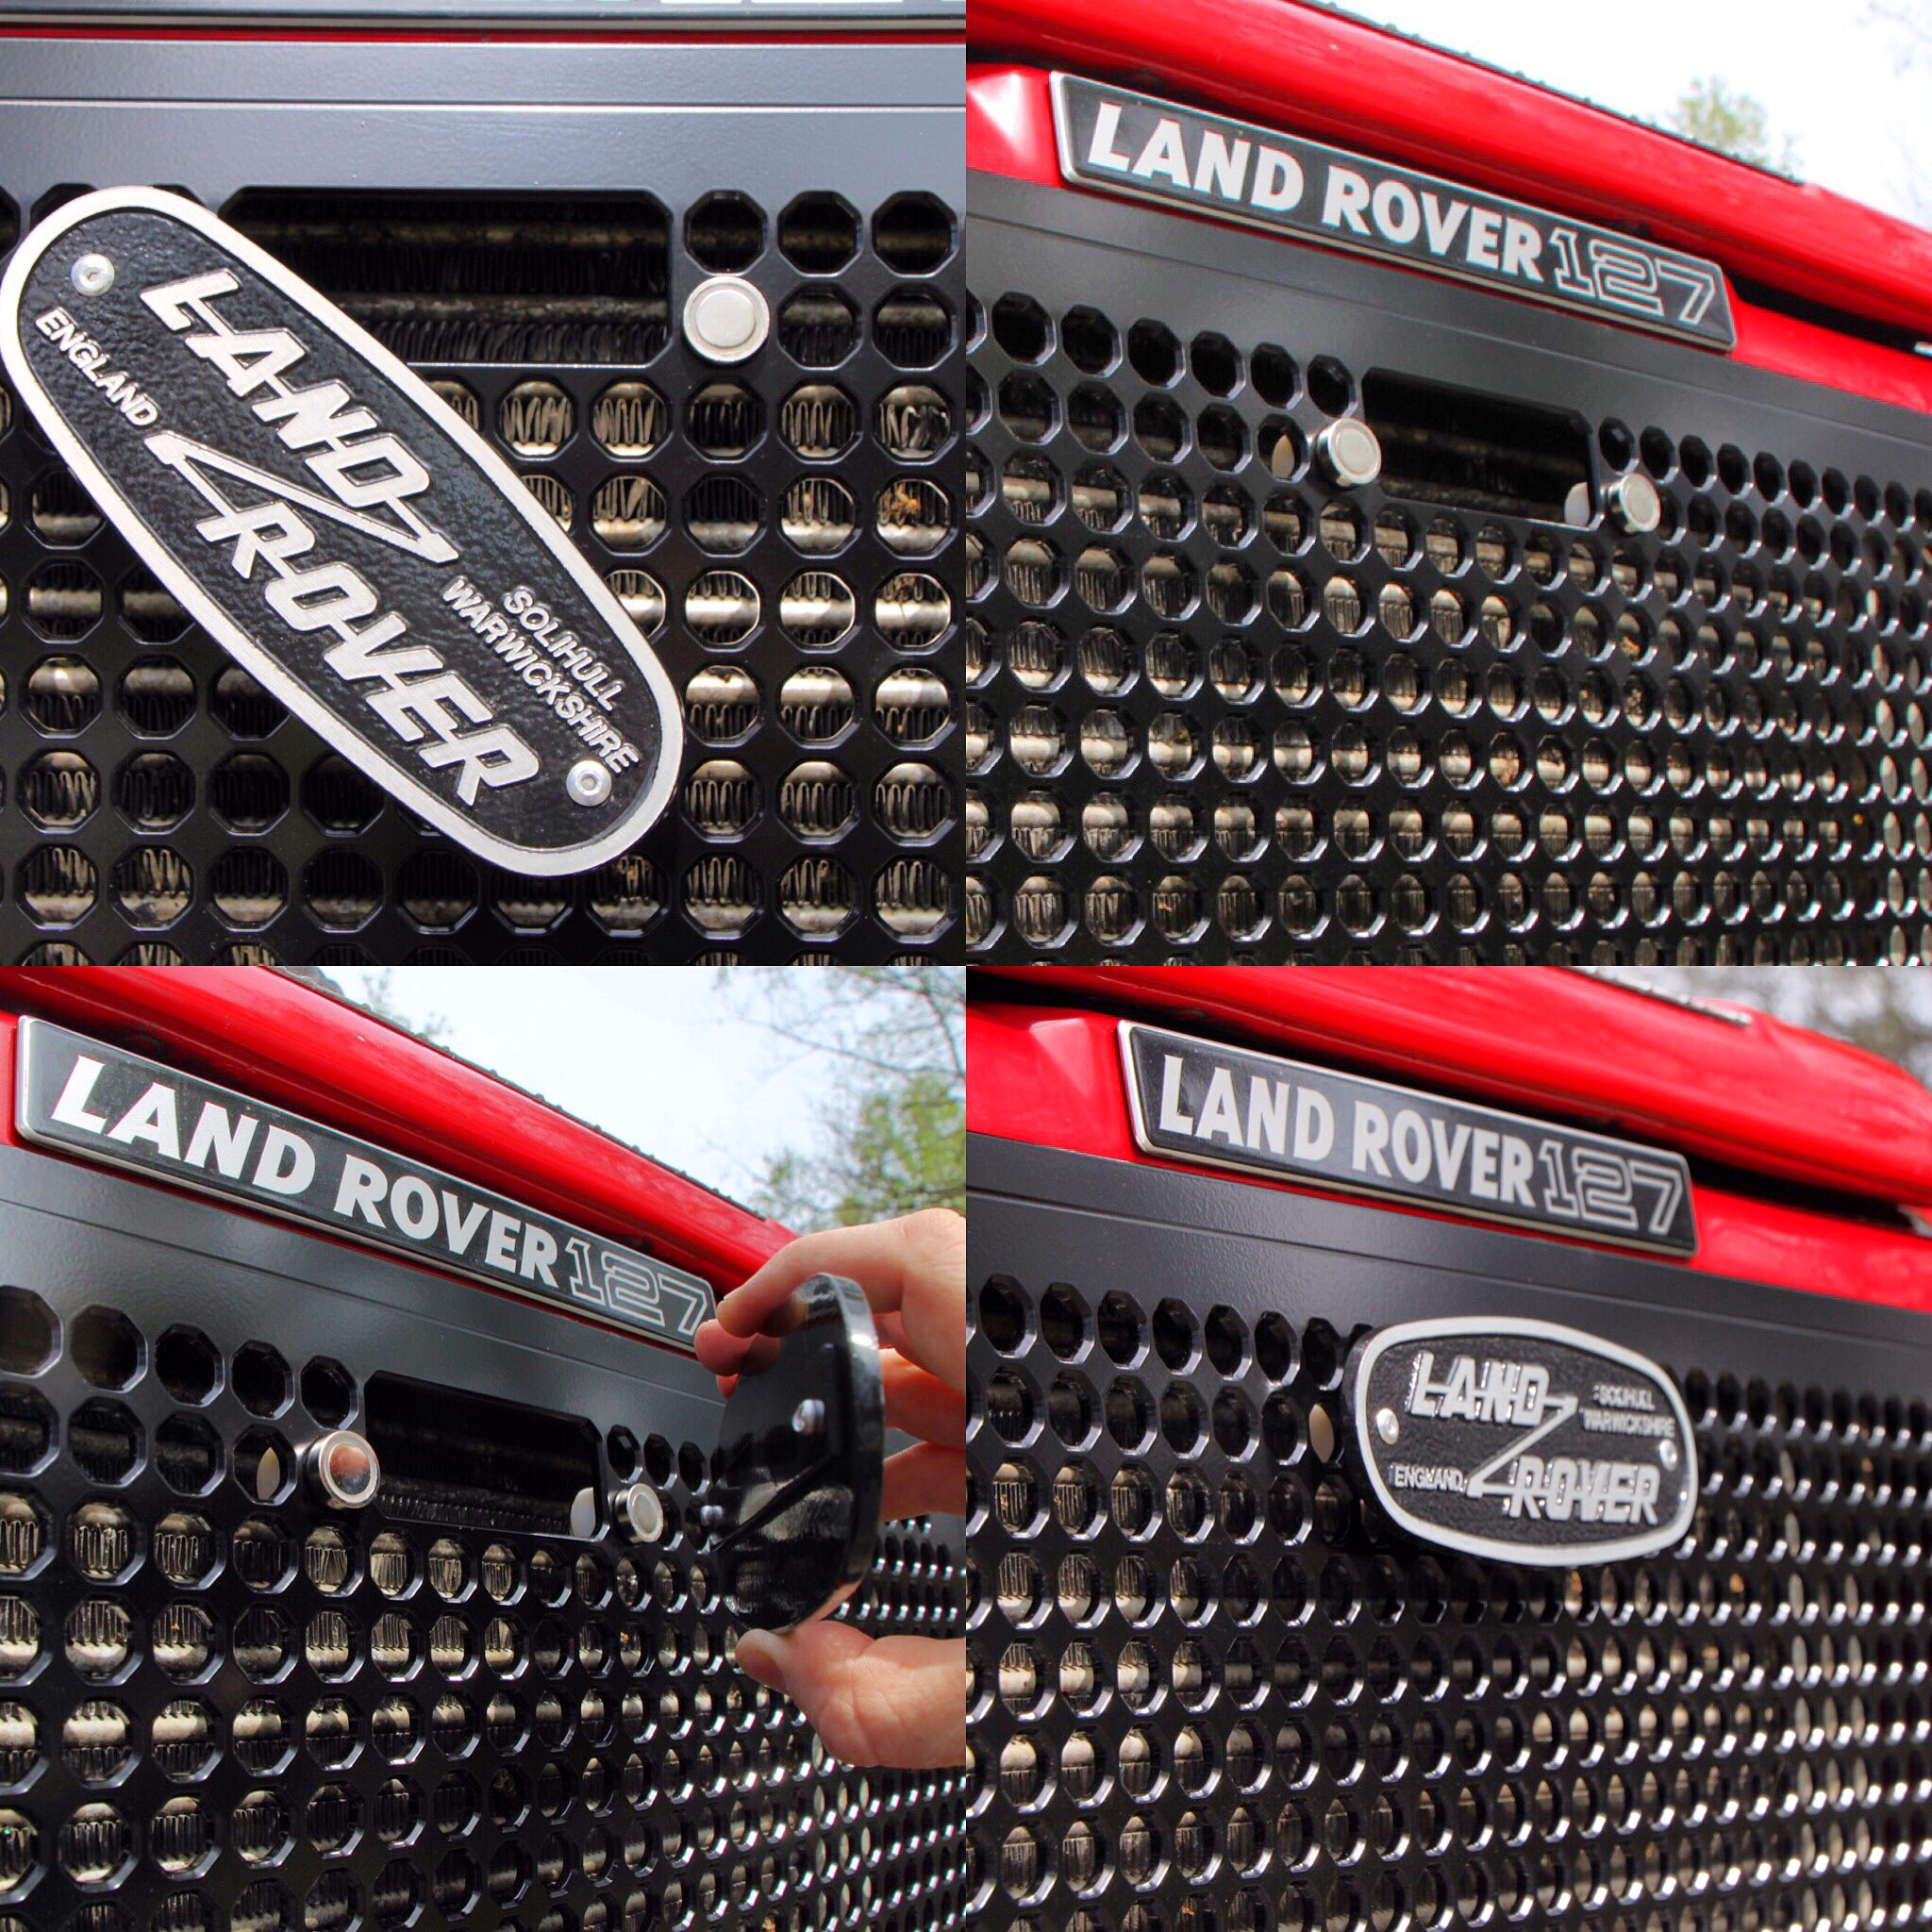 SDO Defender Front Grille (with cutout for manual bonnet latch) & removable Solihull Badge